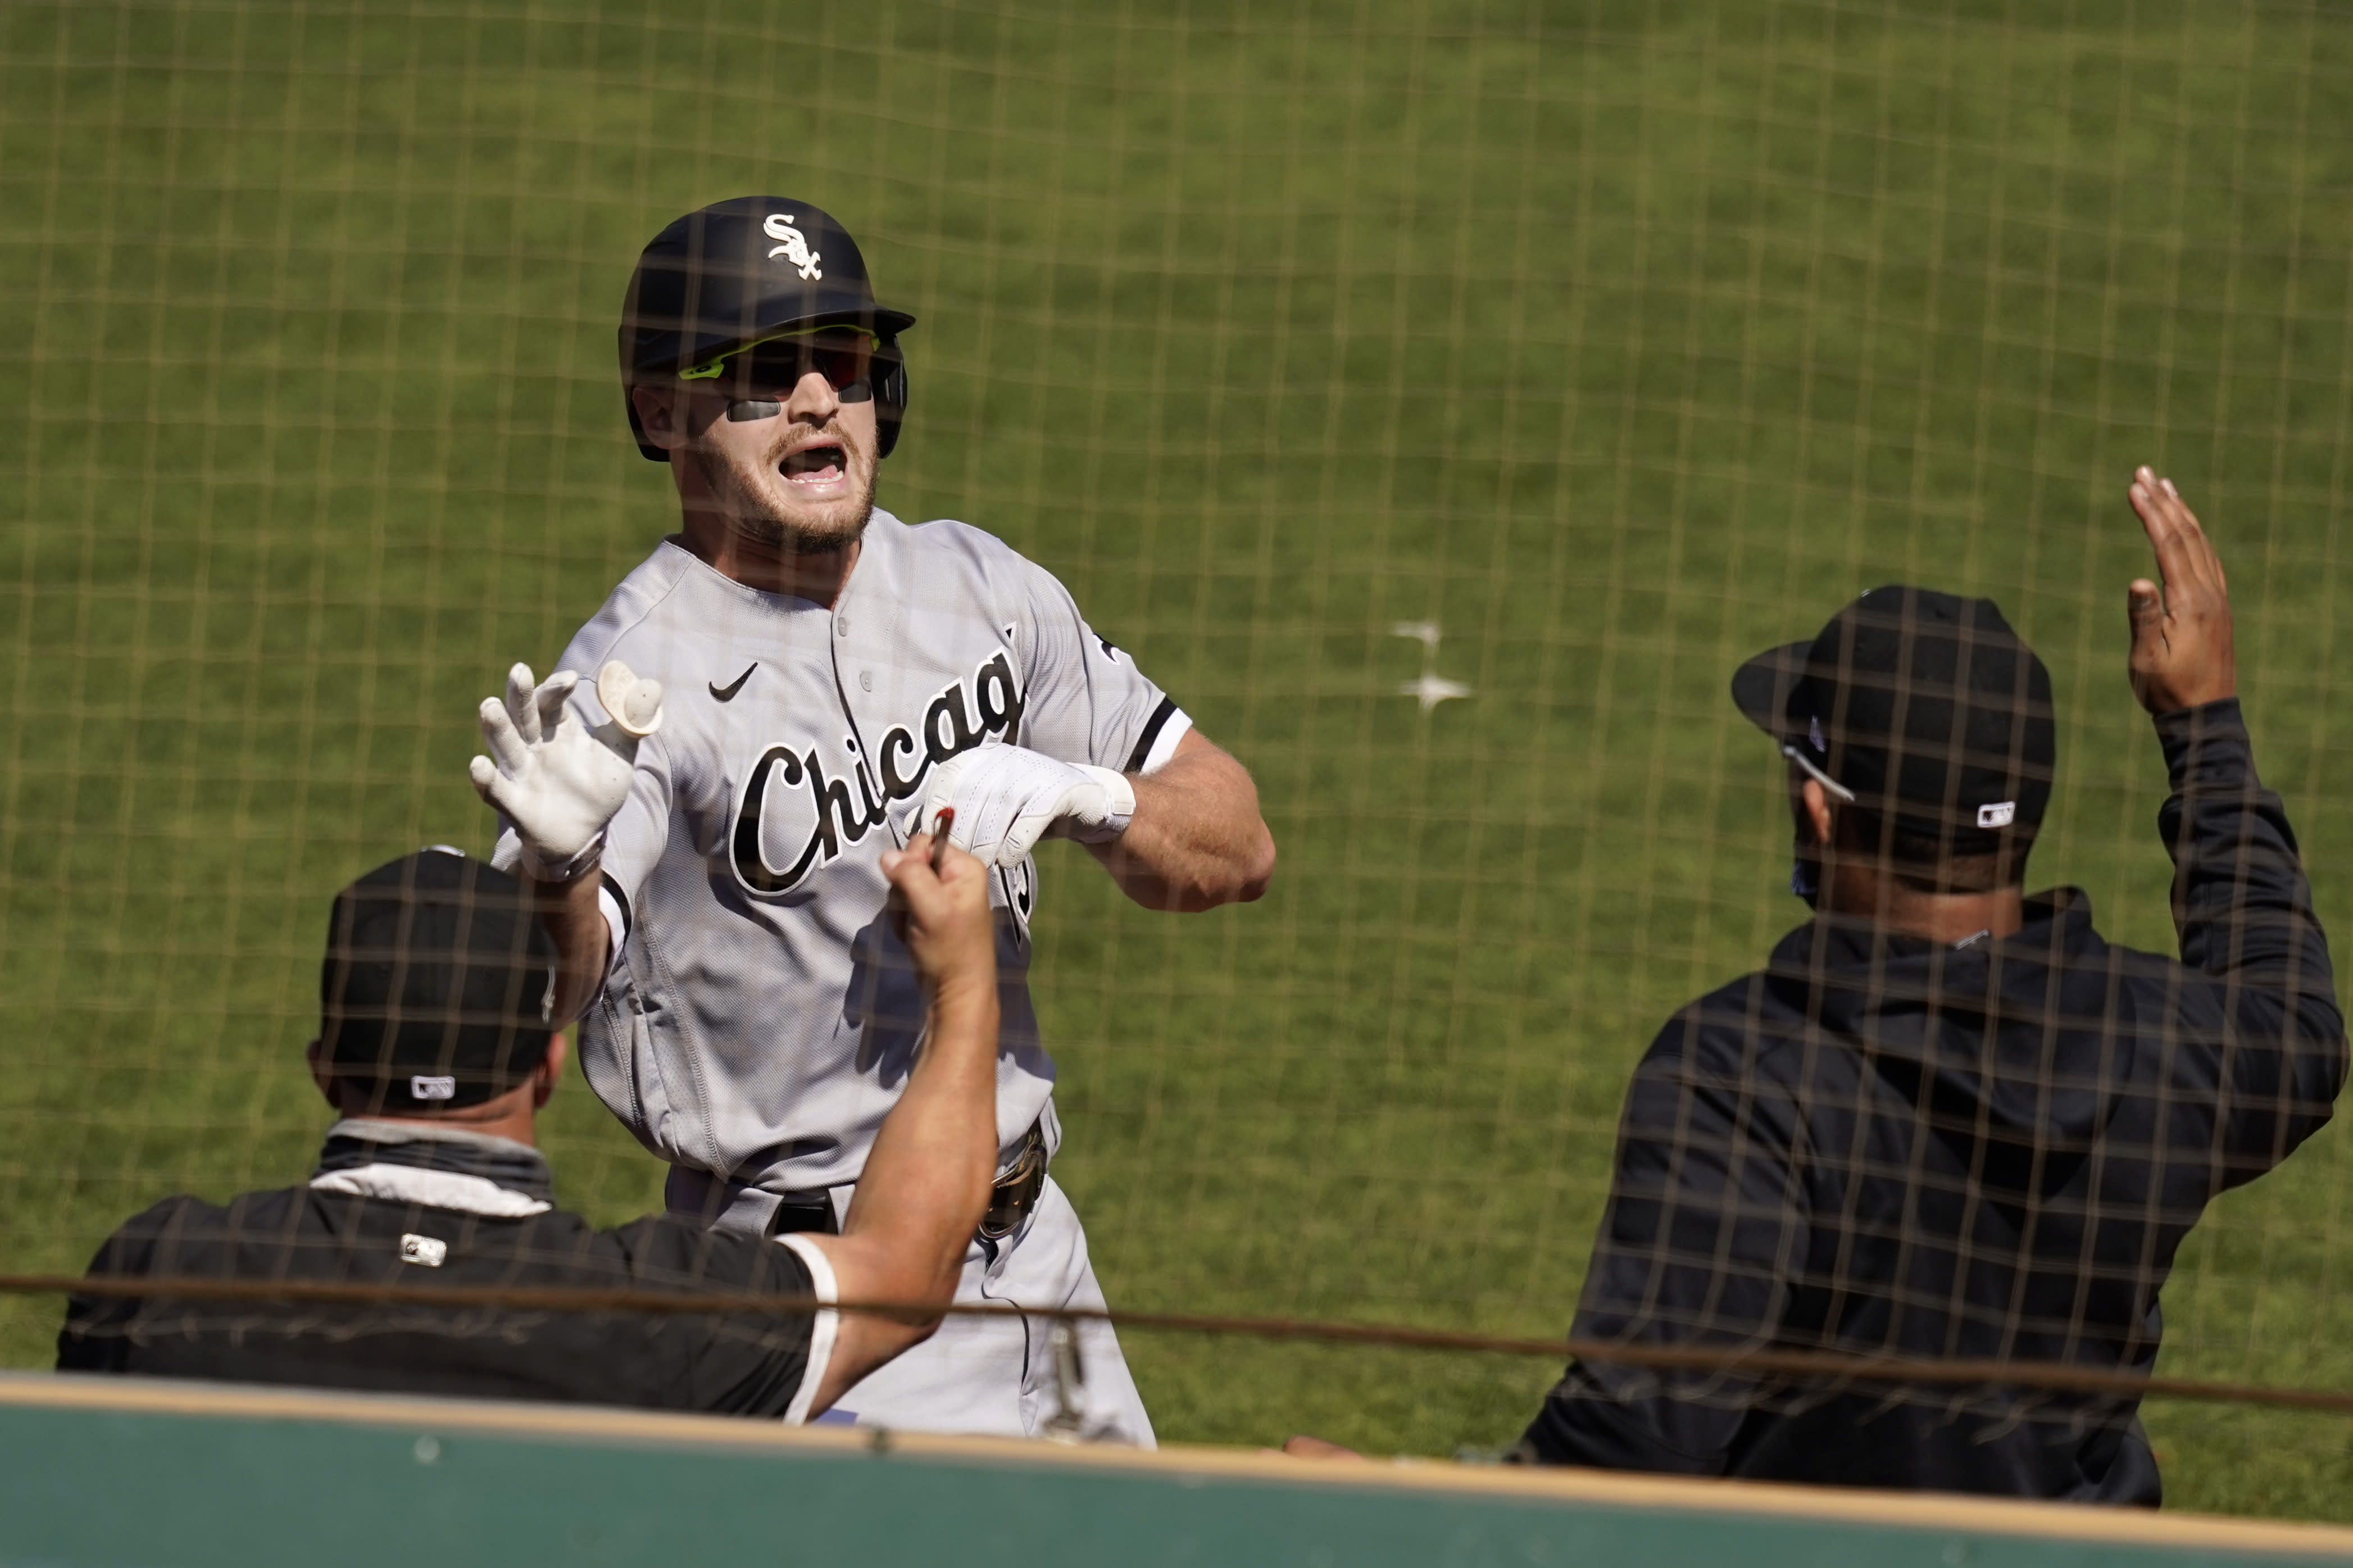 Chicago White Sox's Adam Engel, facing, is congratulated by teammates after hitting a solo home run against the Oakland Athletics during the second inning of Game 1 of an American League wild-card baseball series Tuesday, Sept. 29, 2020, in Oakland, Calif. (AP Photo/Eric Risberg)